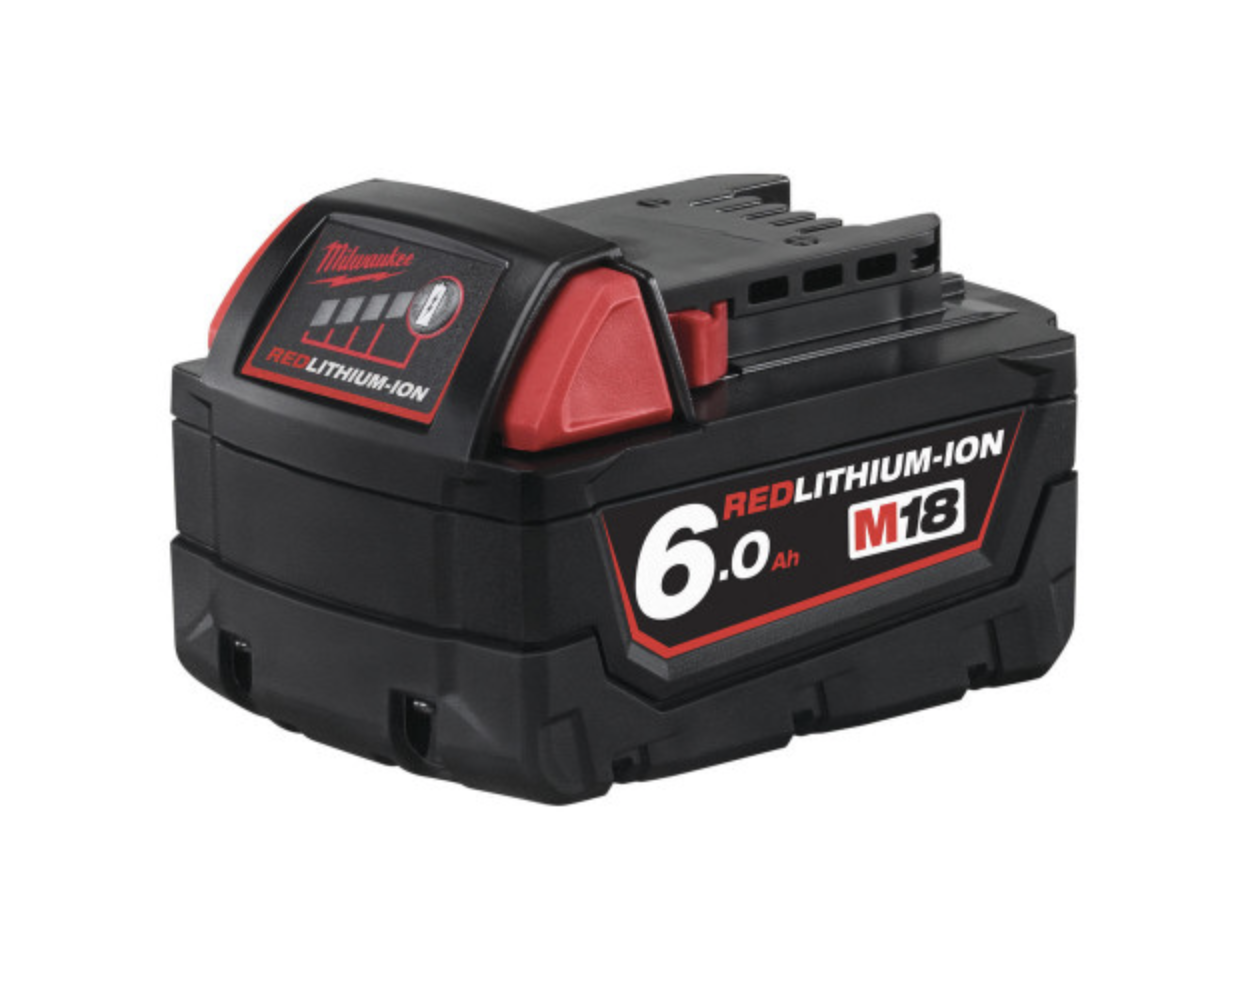 Milwaukee M18B6 M18 18v 6.0Ah Red Lithium-Ion Battery